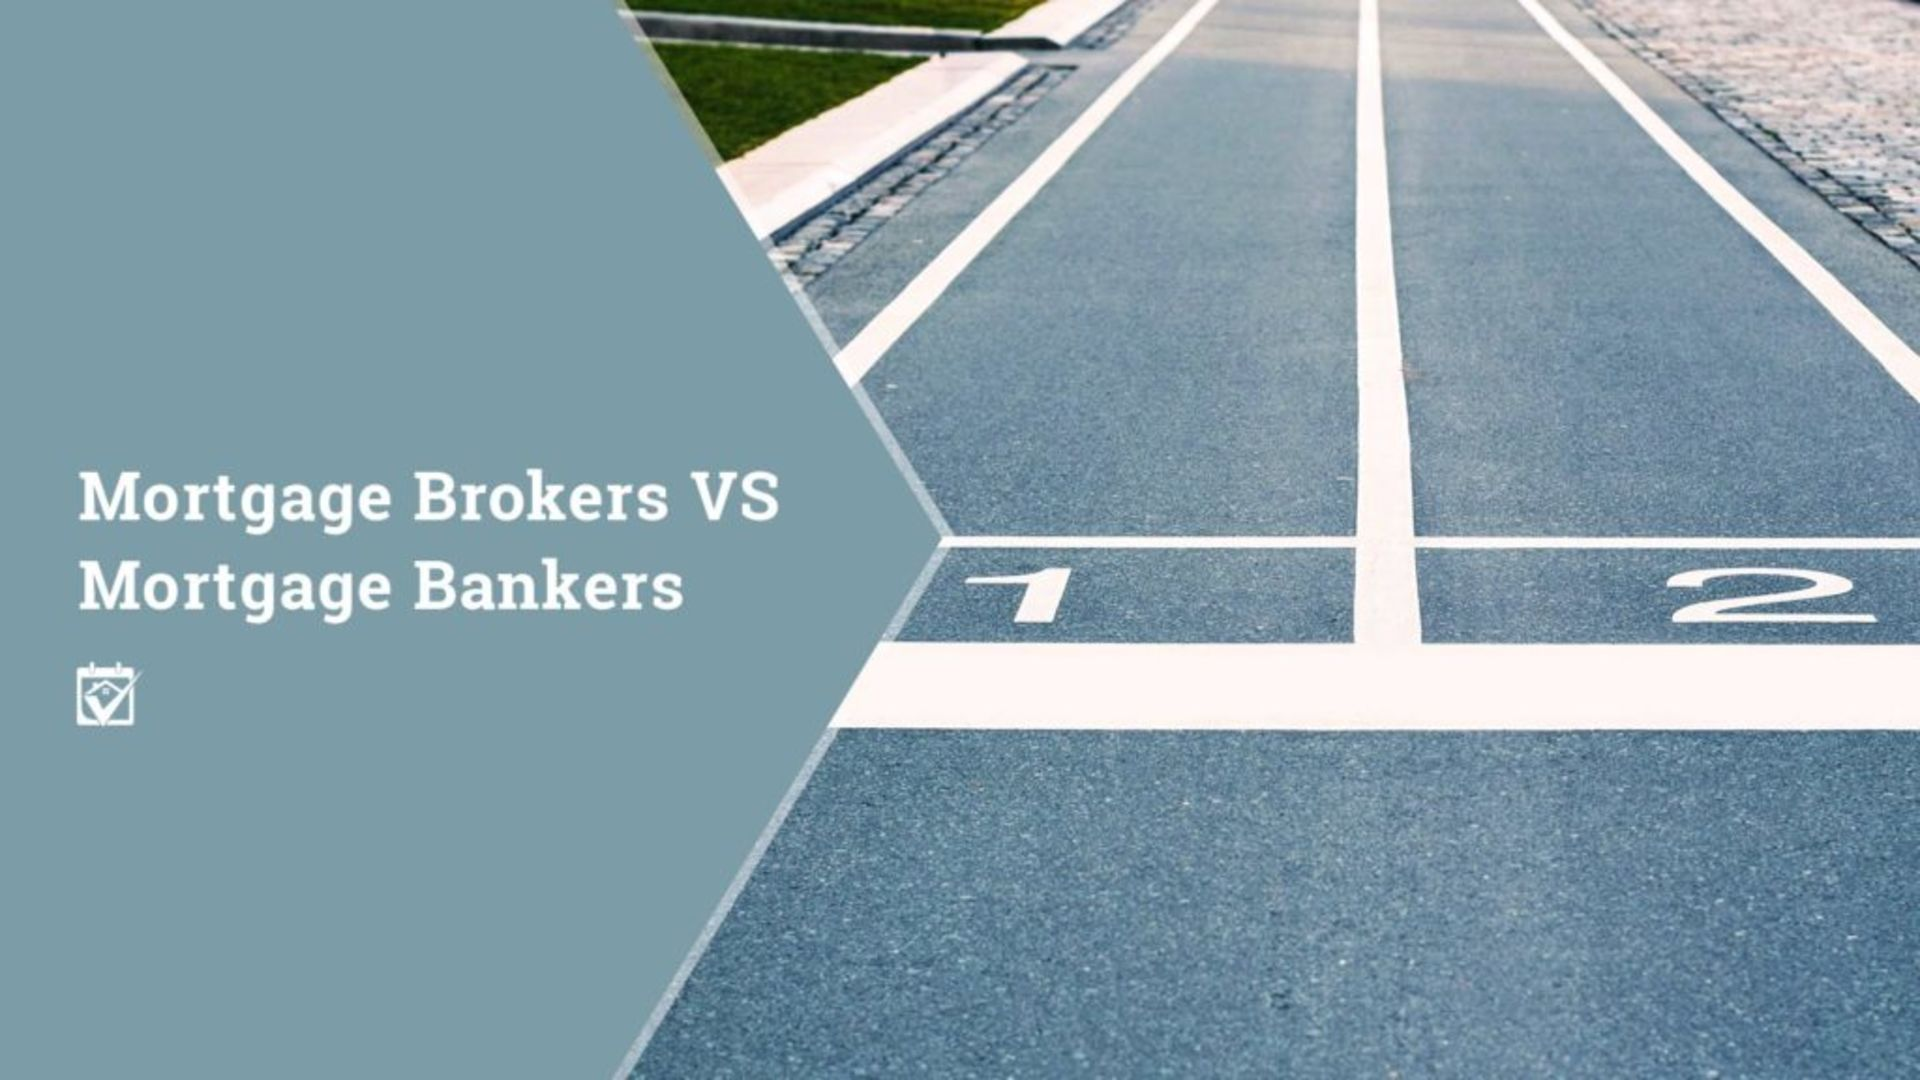 Mortgage Bankers vs Mortgage Brokers